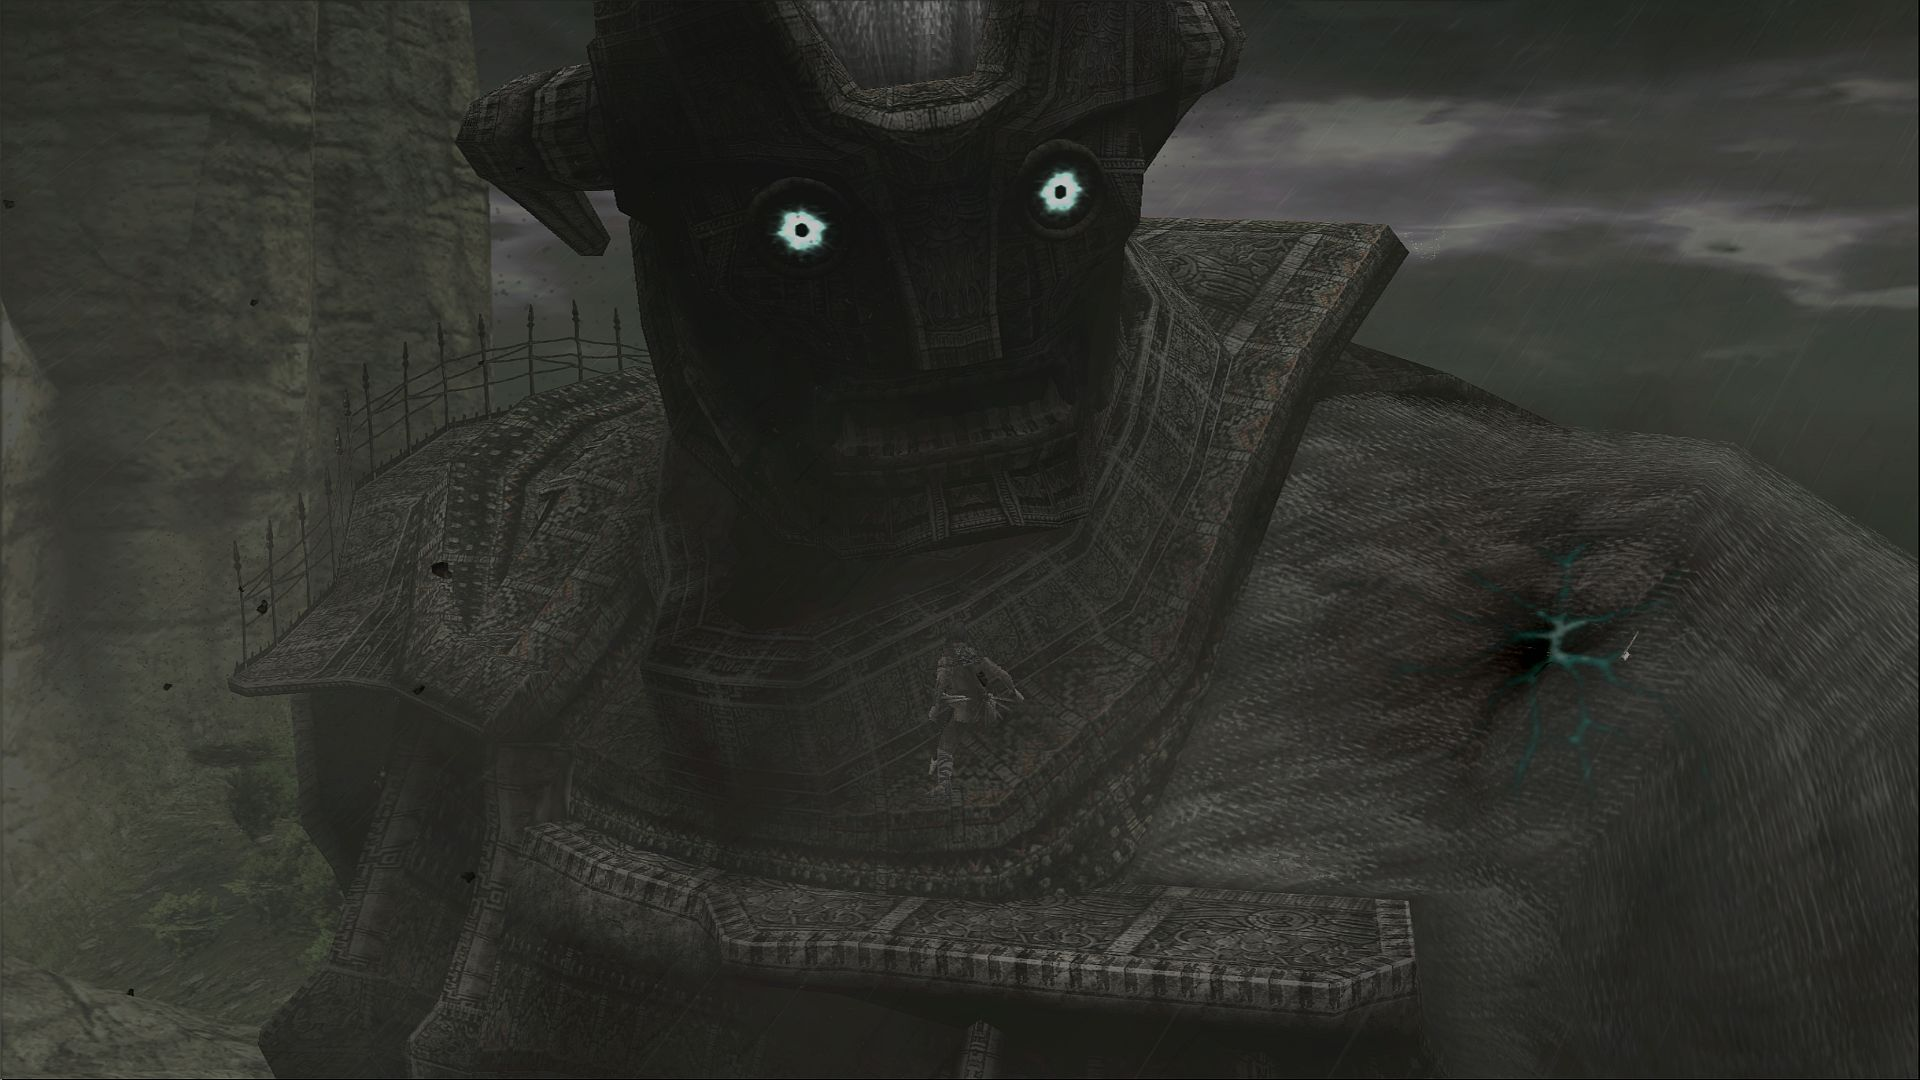 Electricblueskies Shadow Colossus 1080p Malus 12